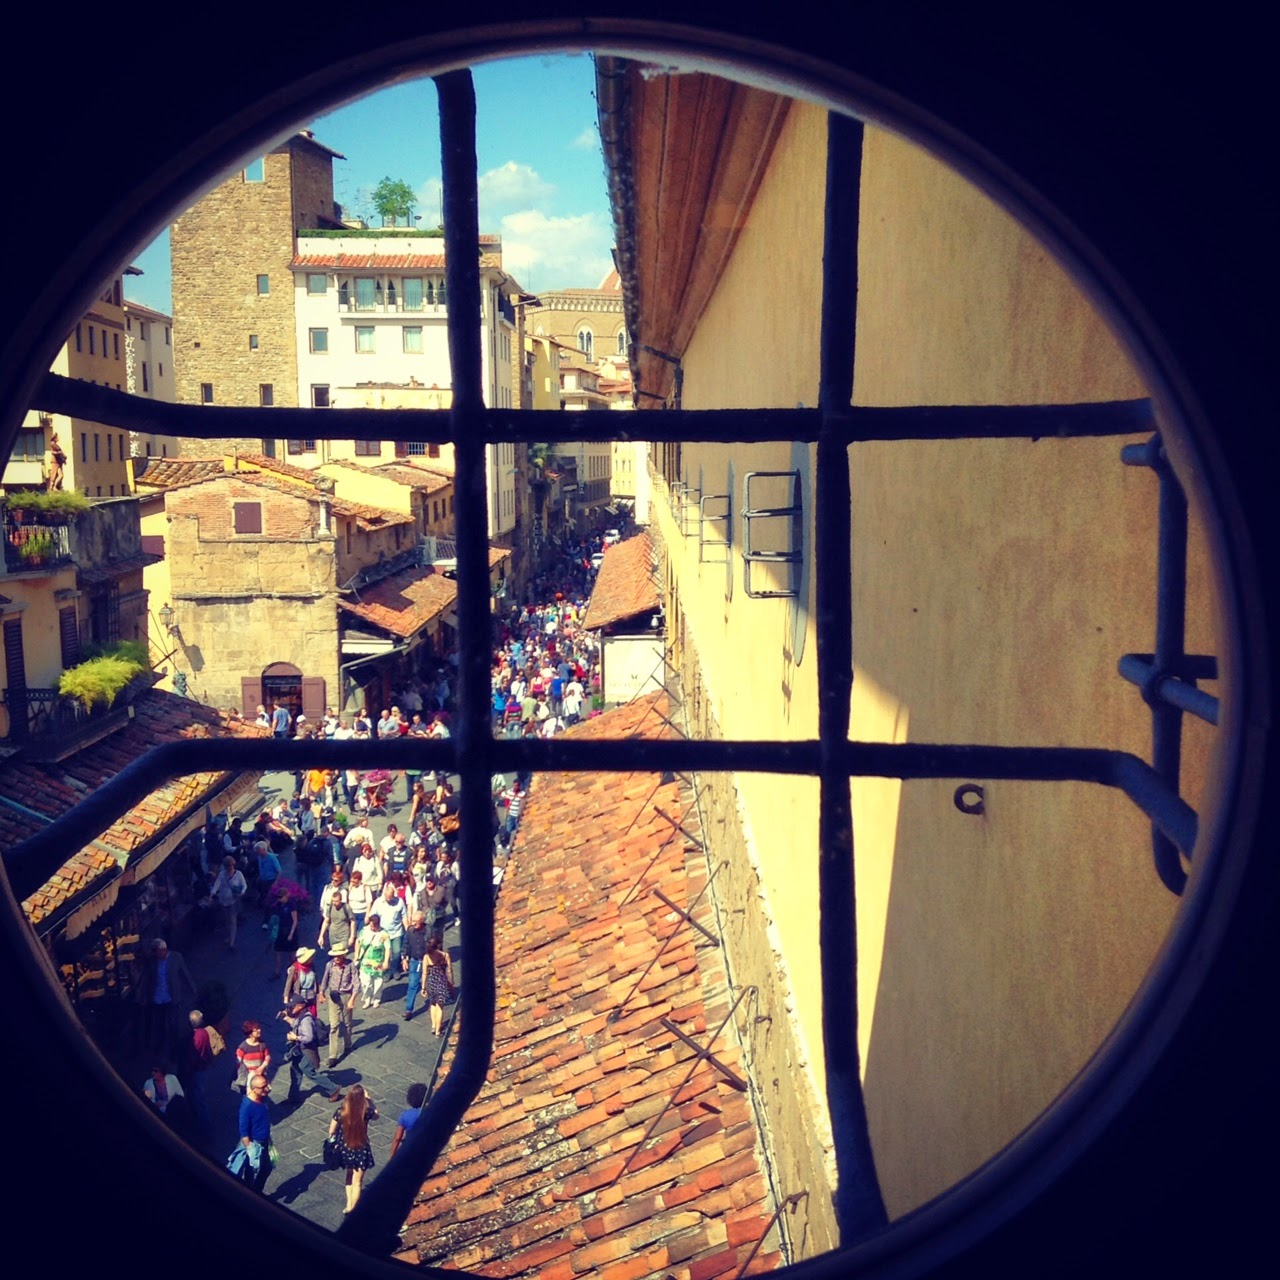 Robert and Sienna are able to cross the Ponte Vecchio Bridge from above unbeknownst to the assassin and police looking for them below.